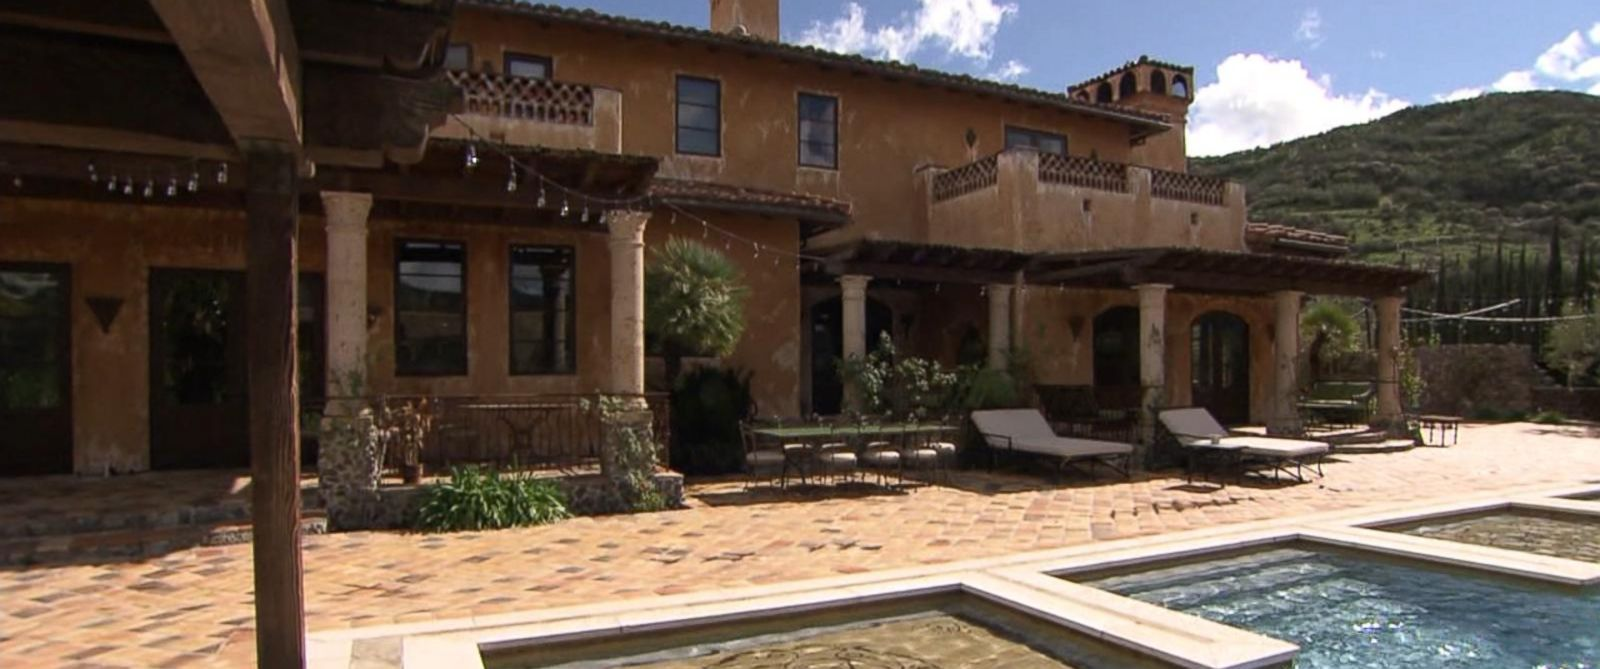 Meet the real family that lives in the bachelor mansion breaking us news - Bachelor house ...